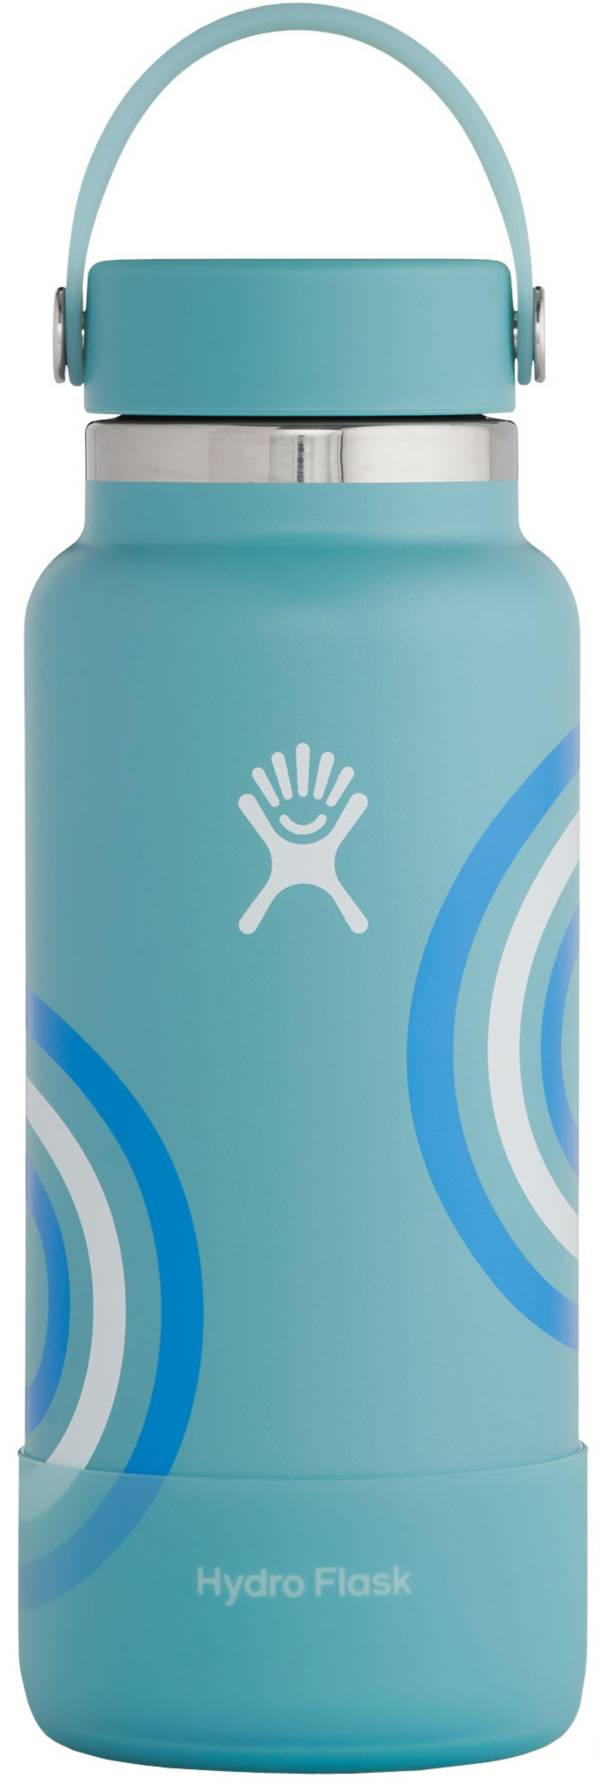 Hydro Flask 32 oz. Refill For Good Wide Mouth Bottle with Flex Cap product image